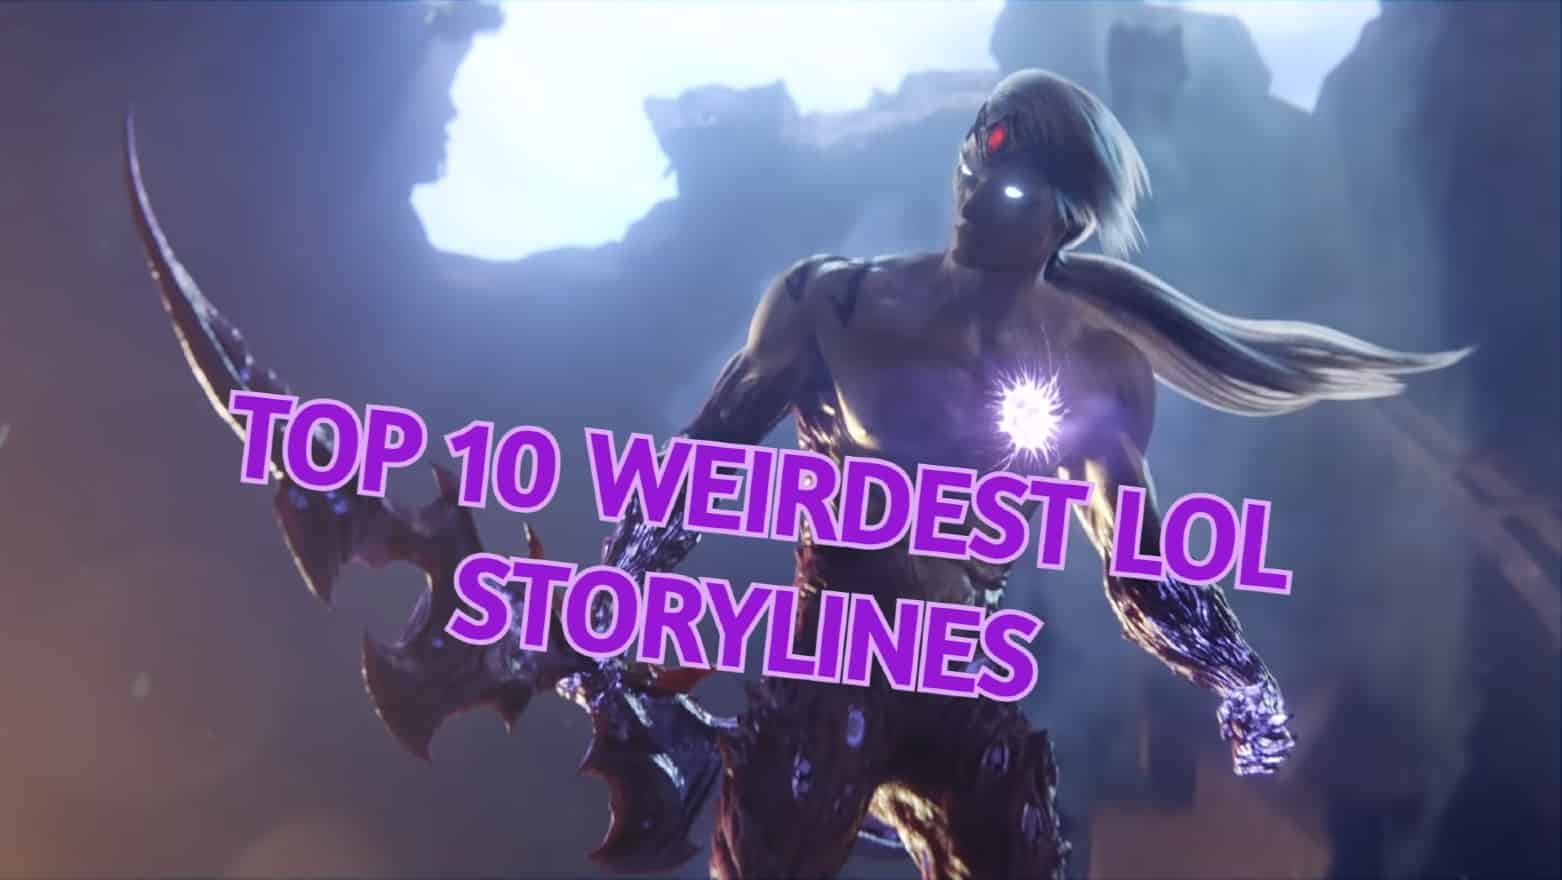 Varus animated from the As We Fall music video | Weirdest LoL Storylines Banner